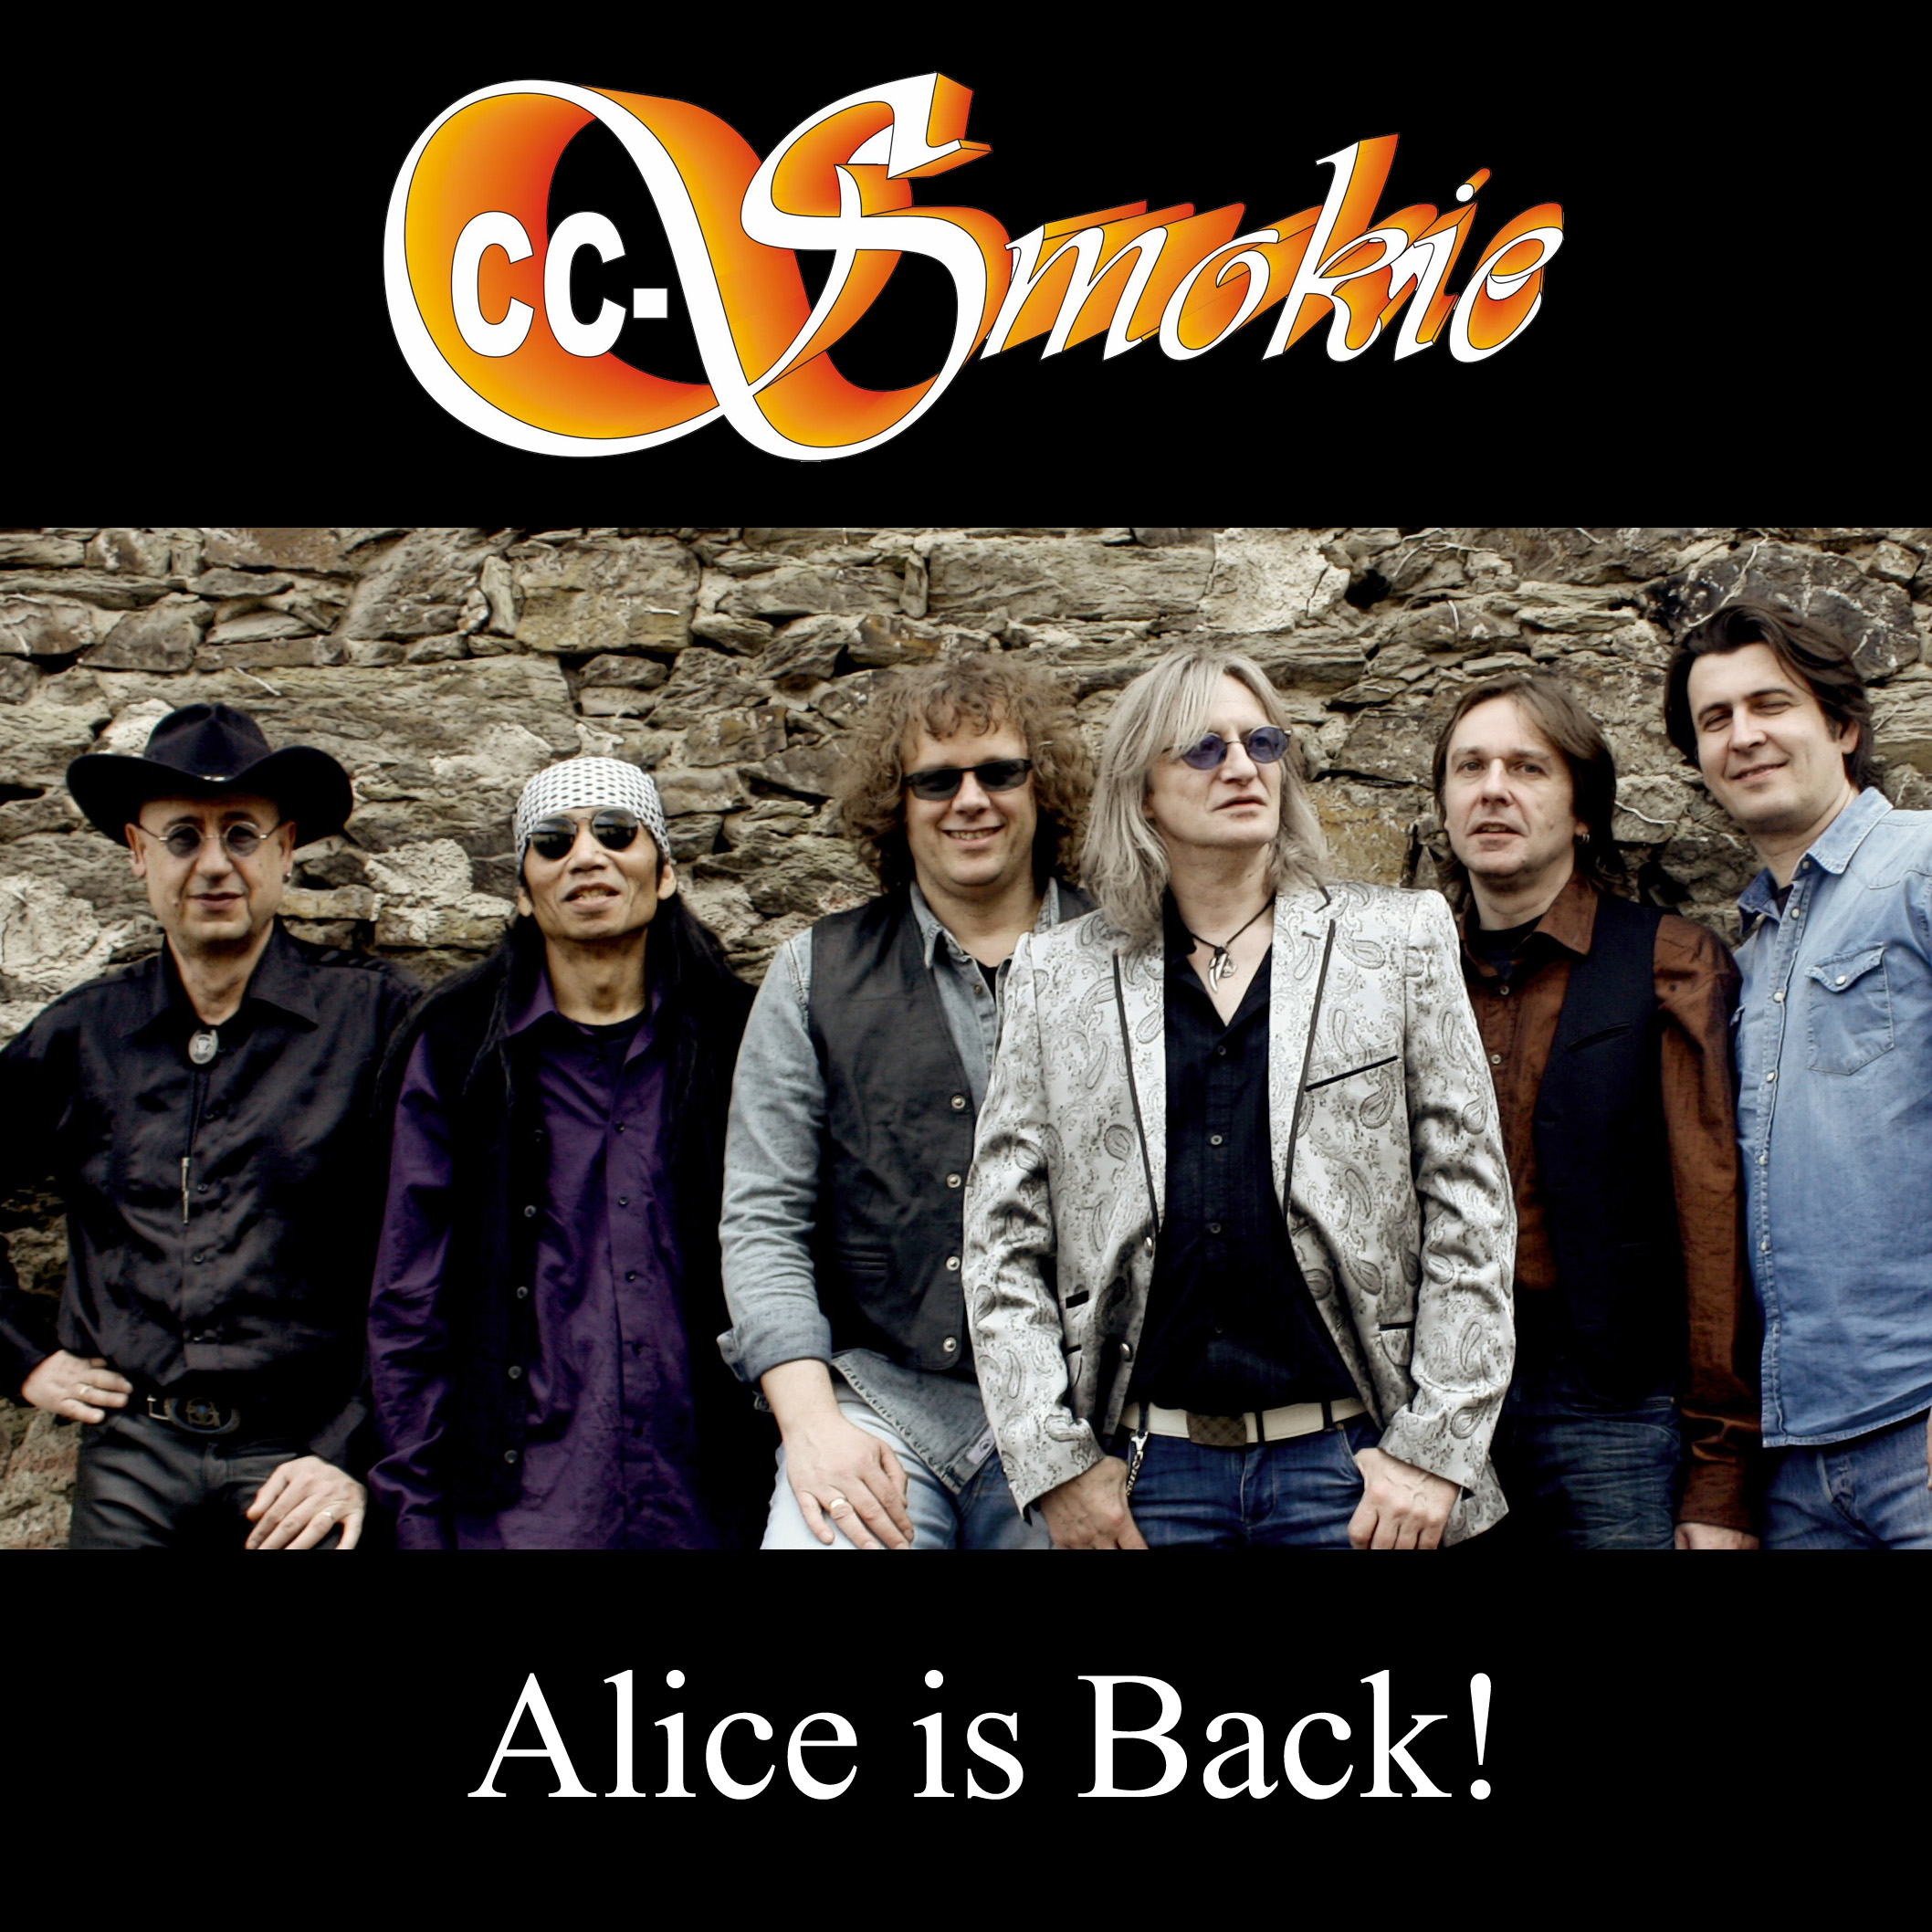 Tribute to Smokie - Chris Norman mit CC-Smokie